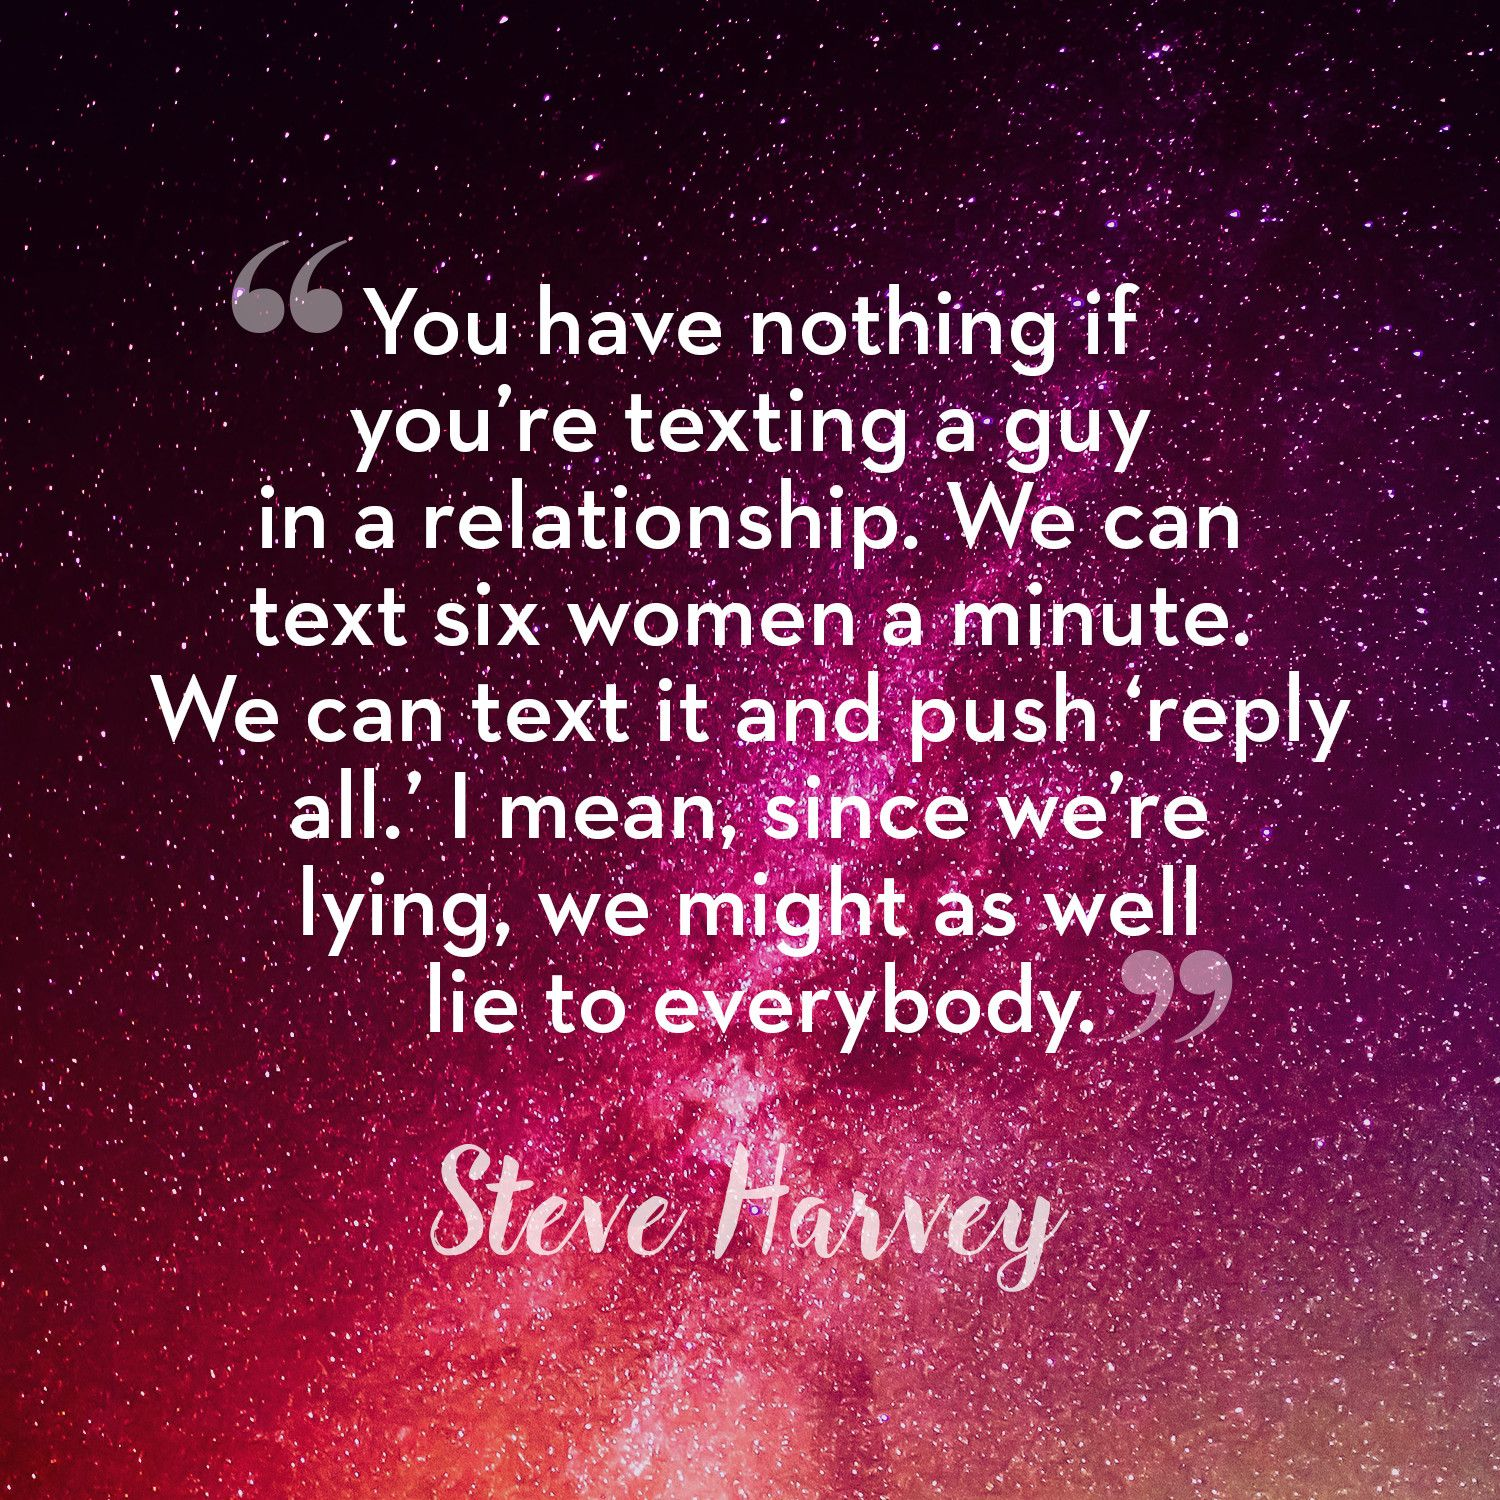 Relationship Quotes For Women: 50 Times Steve Harvey Reminded Us To Raise Our